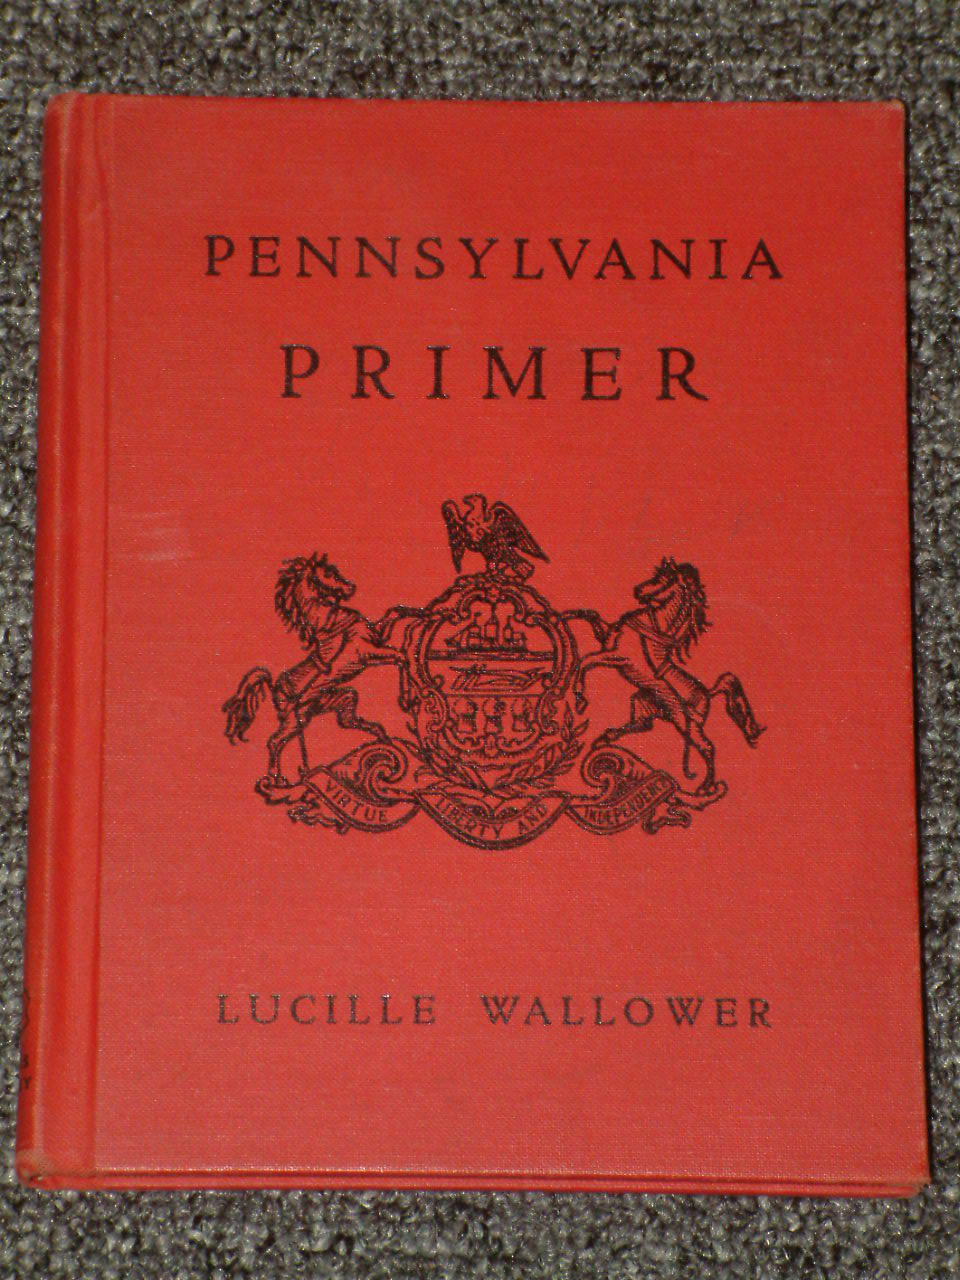 Pennsylvania Primer by Lucille Wallower Second Printing 1955